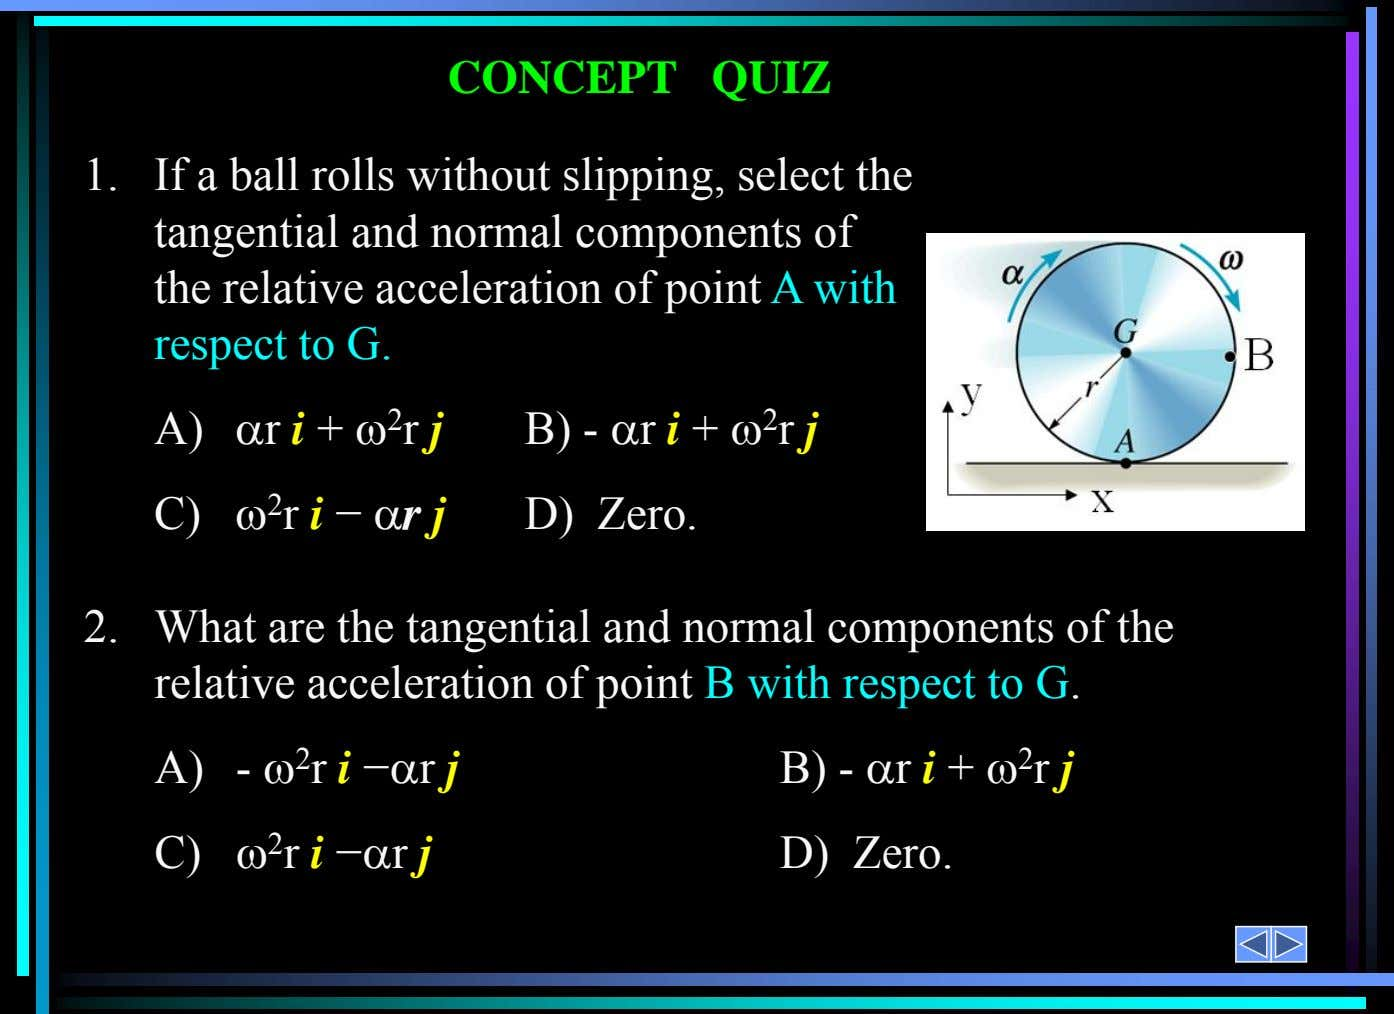 1. If a ball rolls without slipping, select the tangential and normal components of the relative